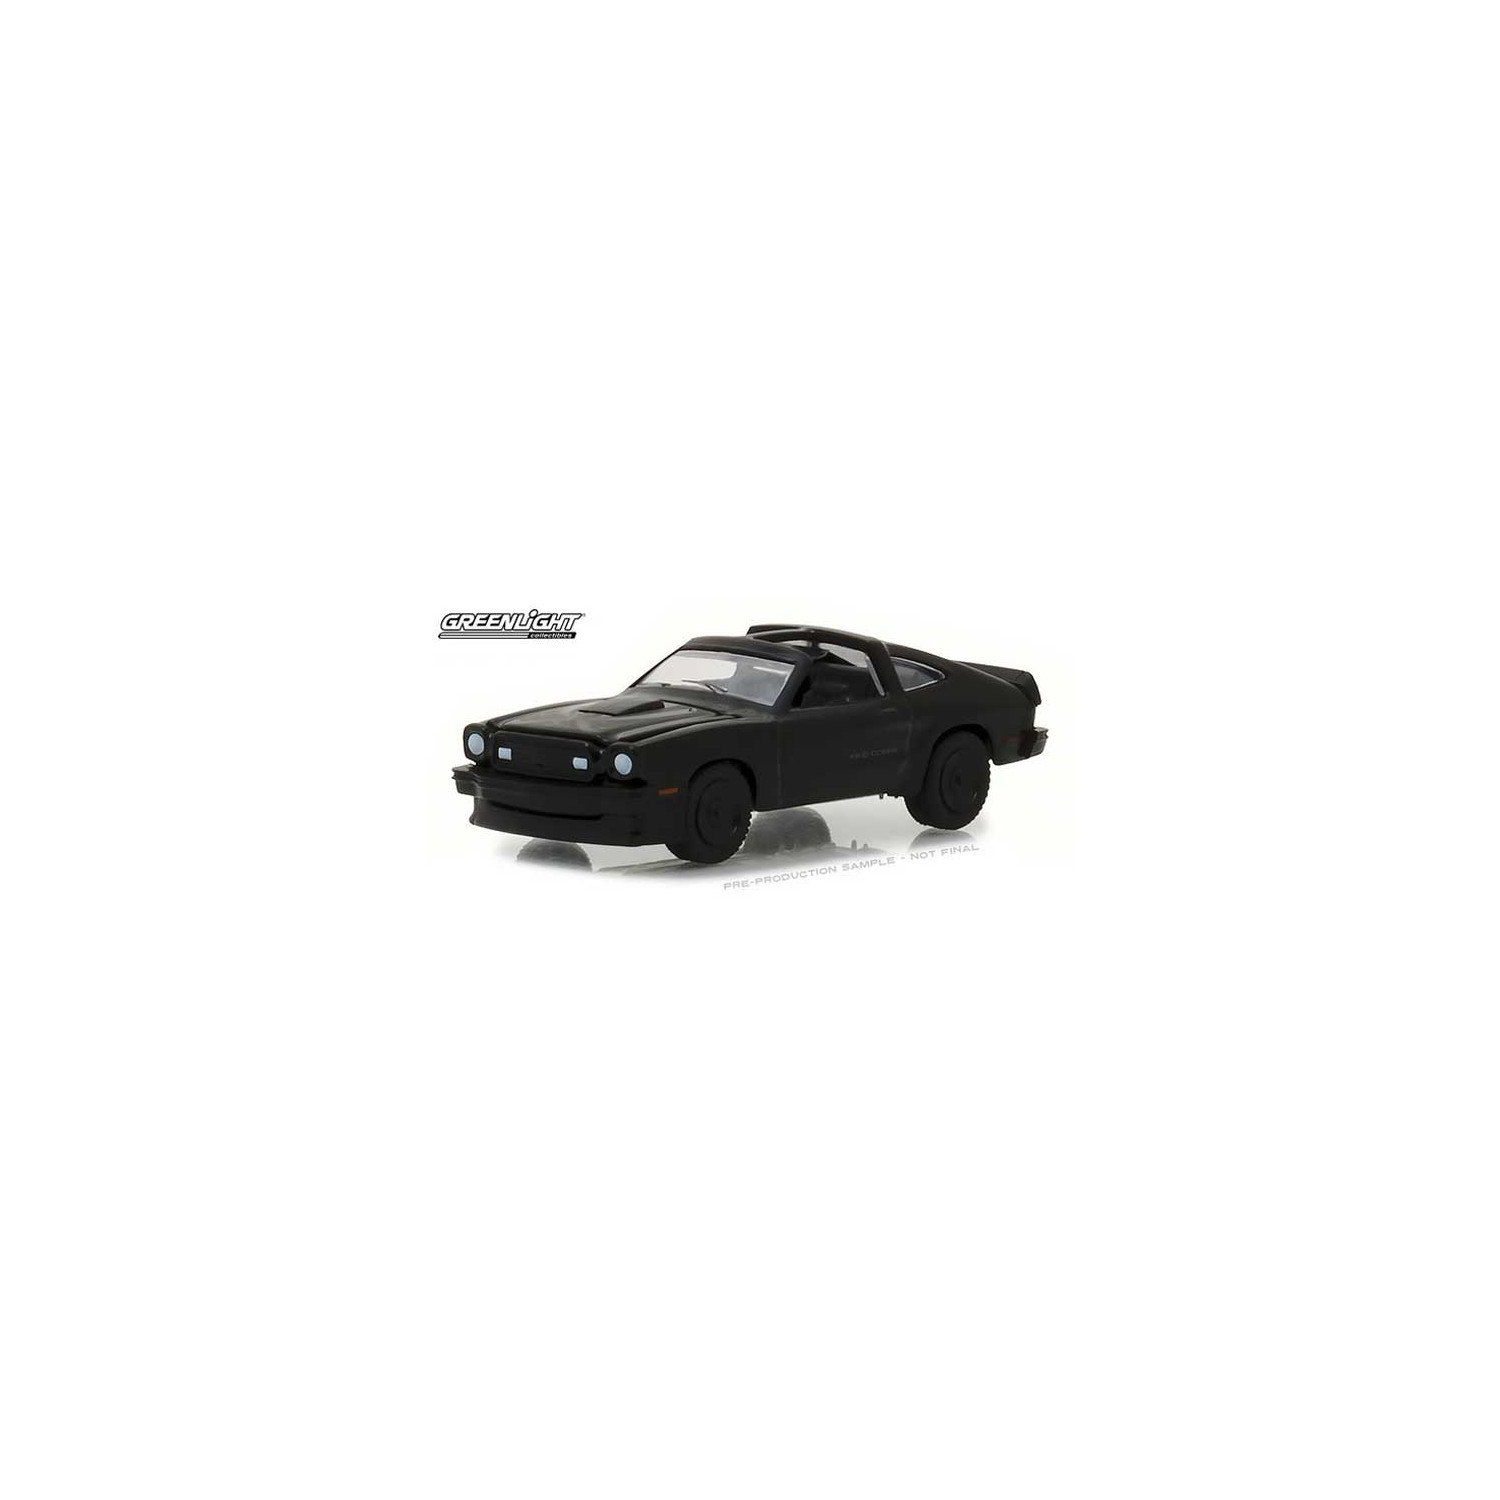 Greenlight Black Bandit Series 19 1978 Ford Mustang Ii King Cobra Chevrolet Camaro